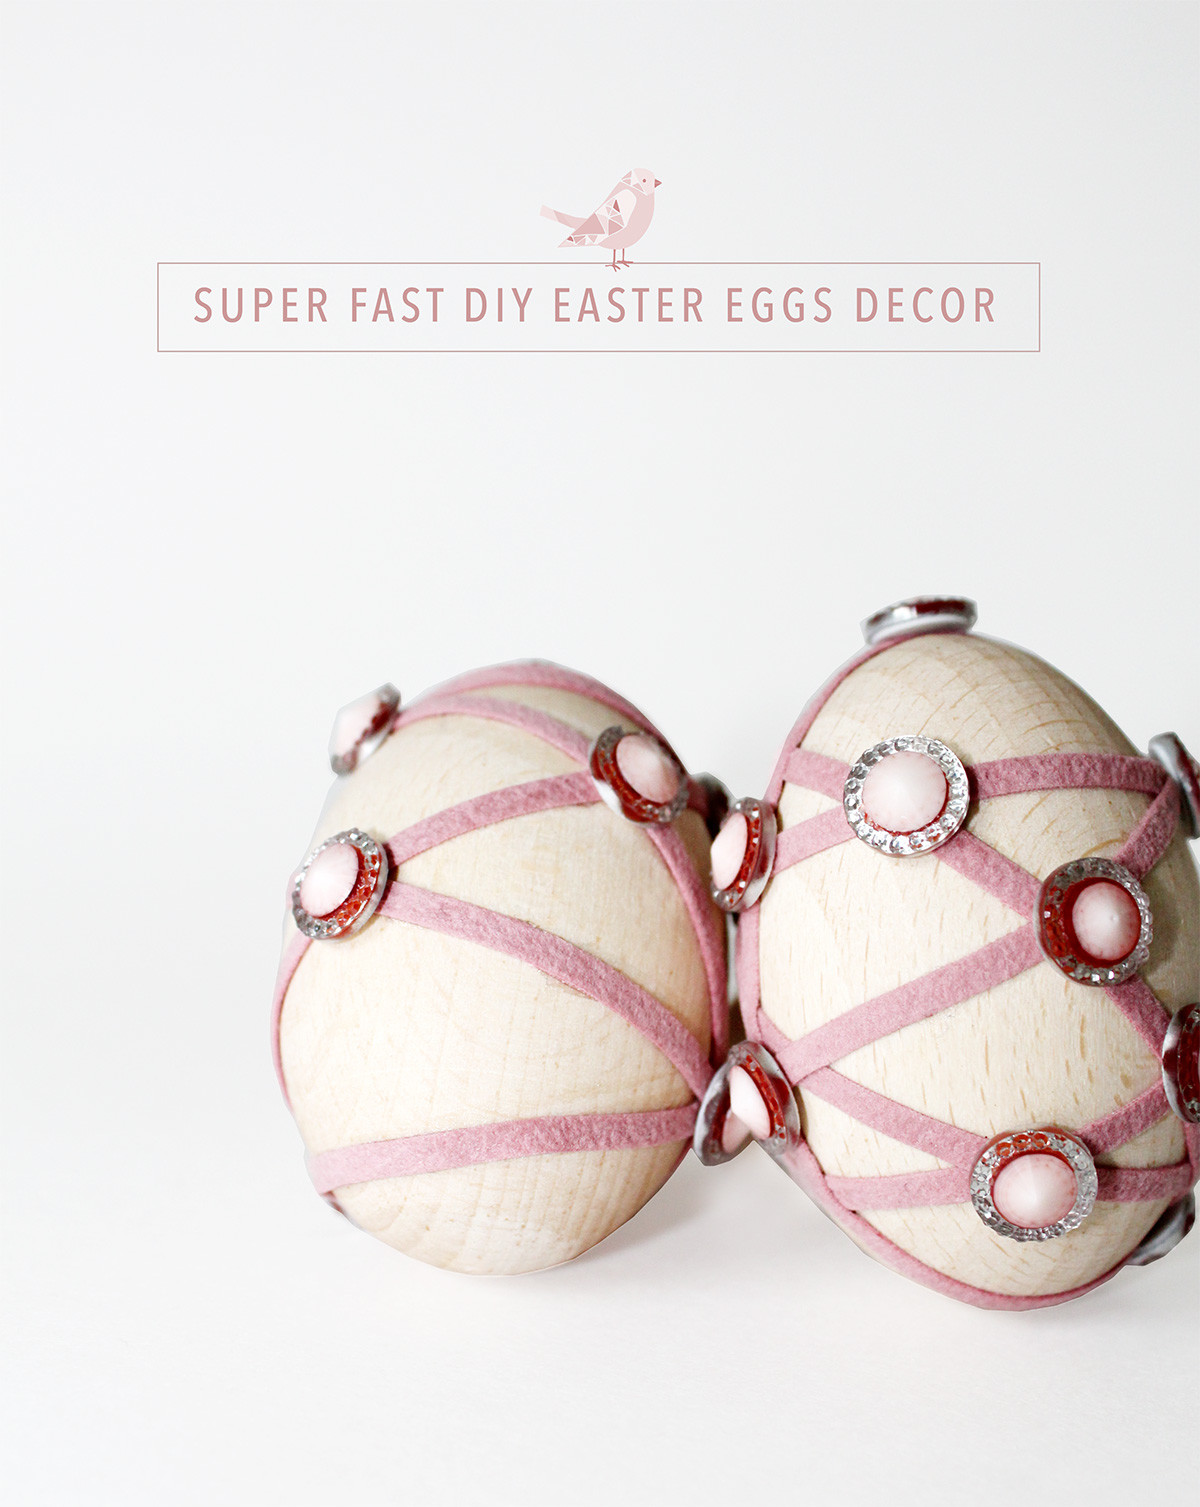 Super fast DIY Easter Eggs Decor